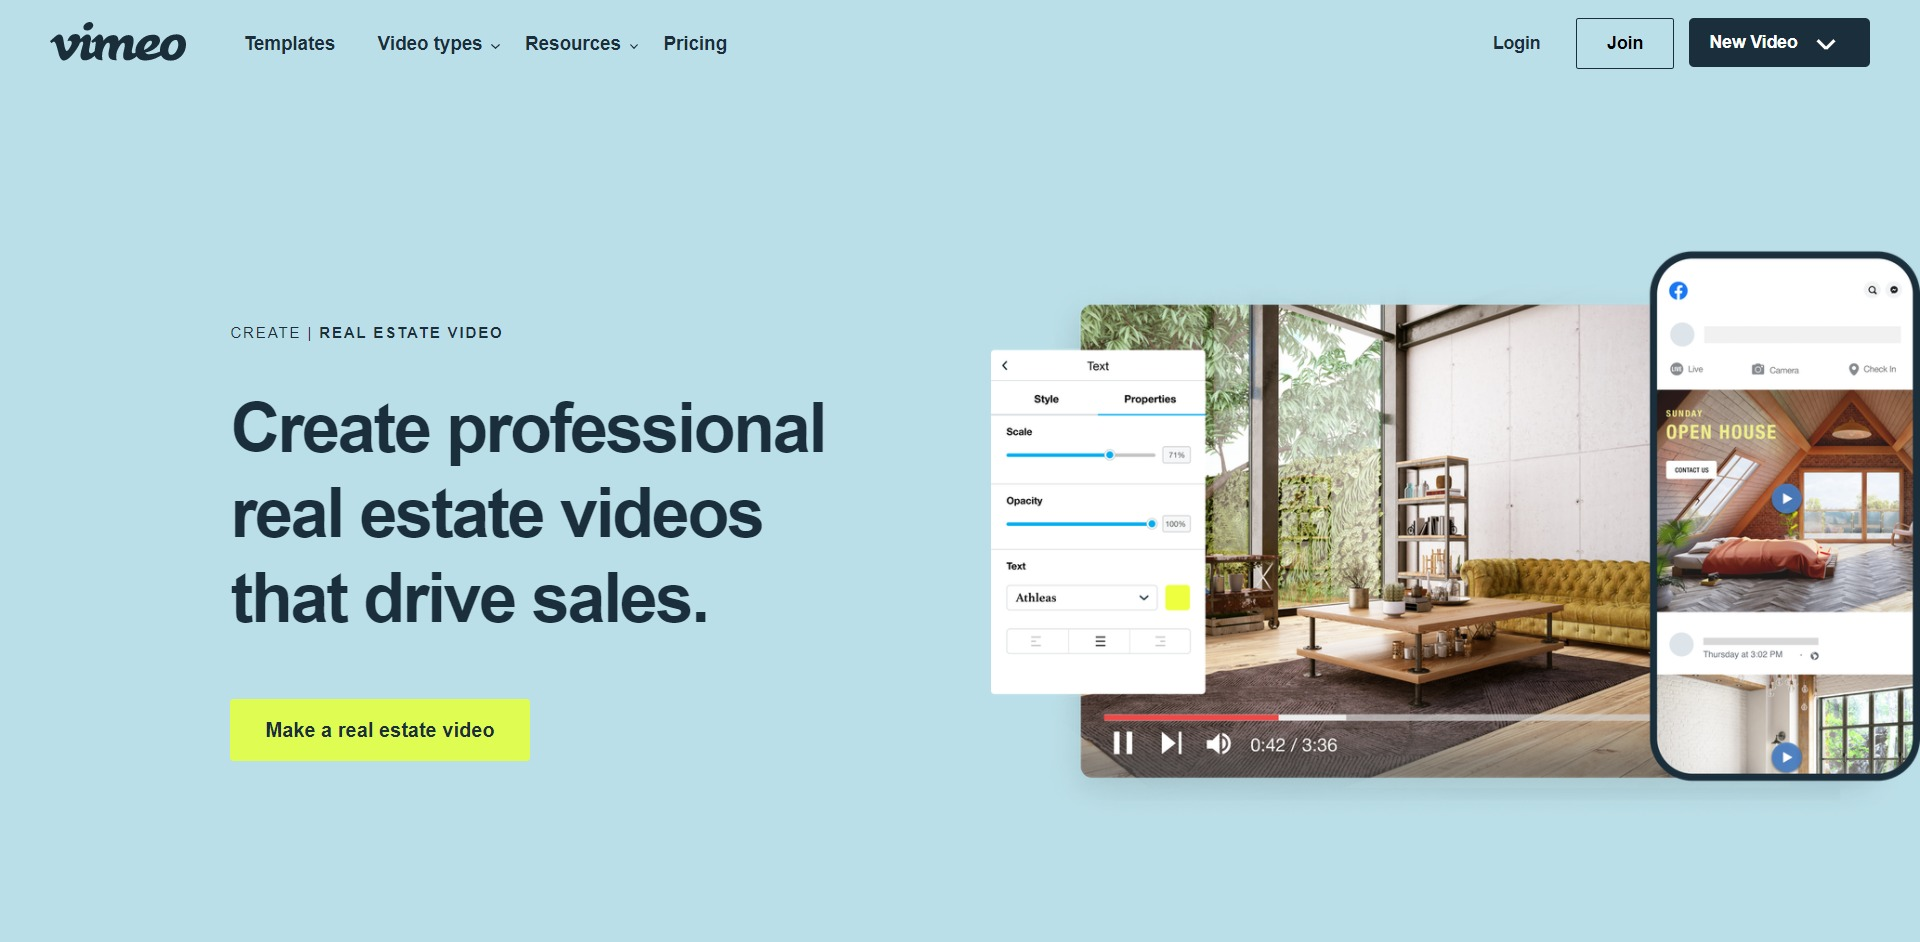 The best Video Marketing Software for Real Estate Investors